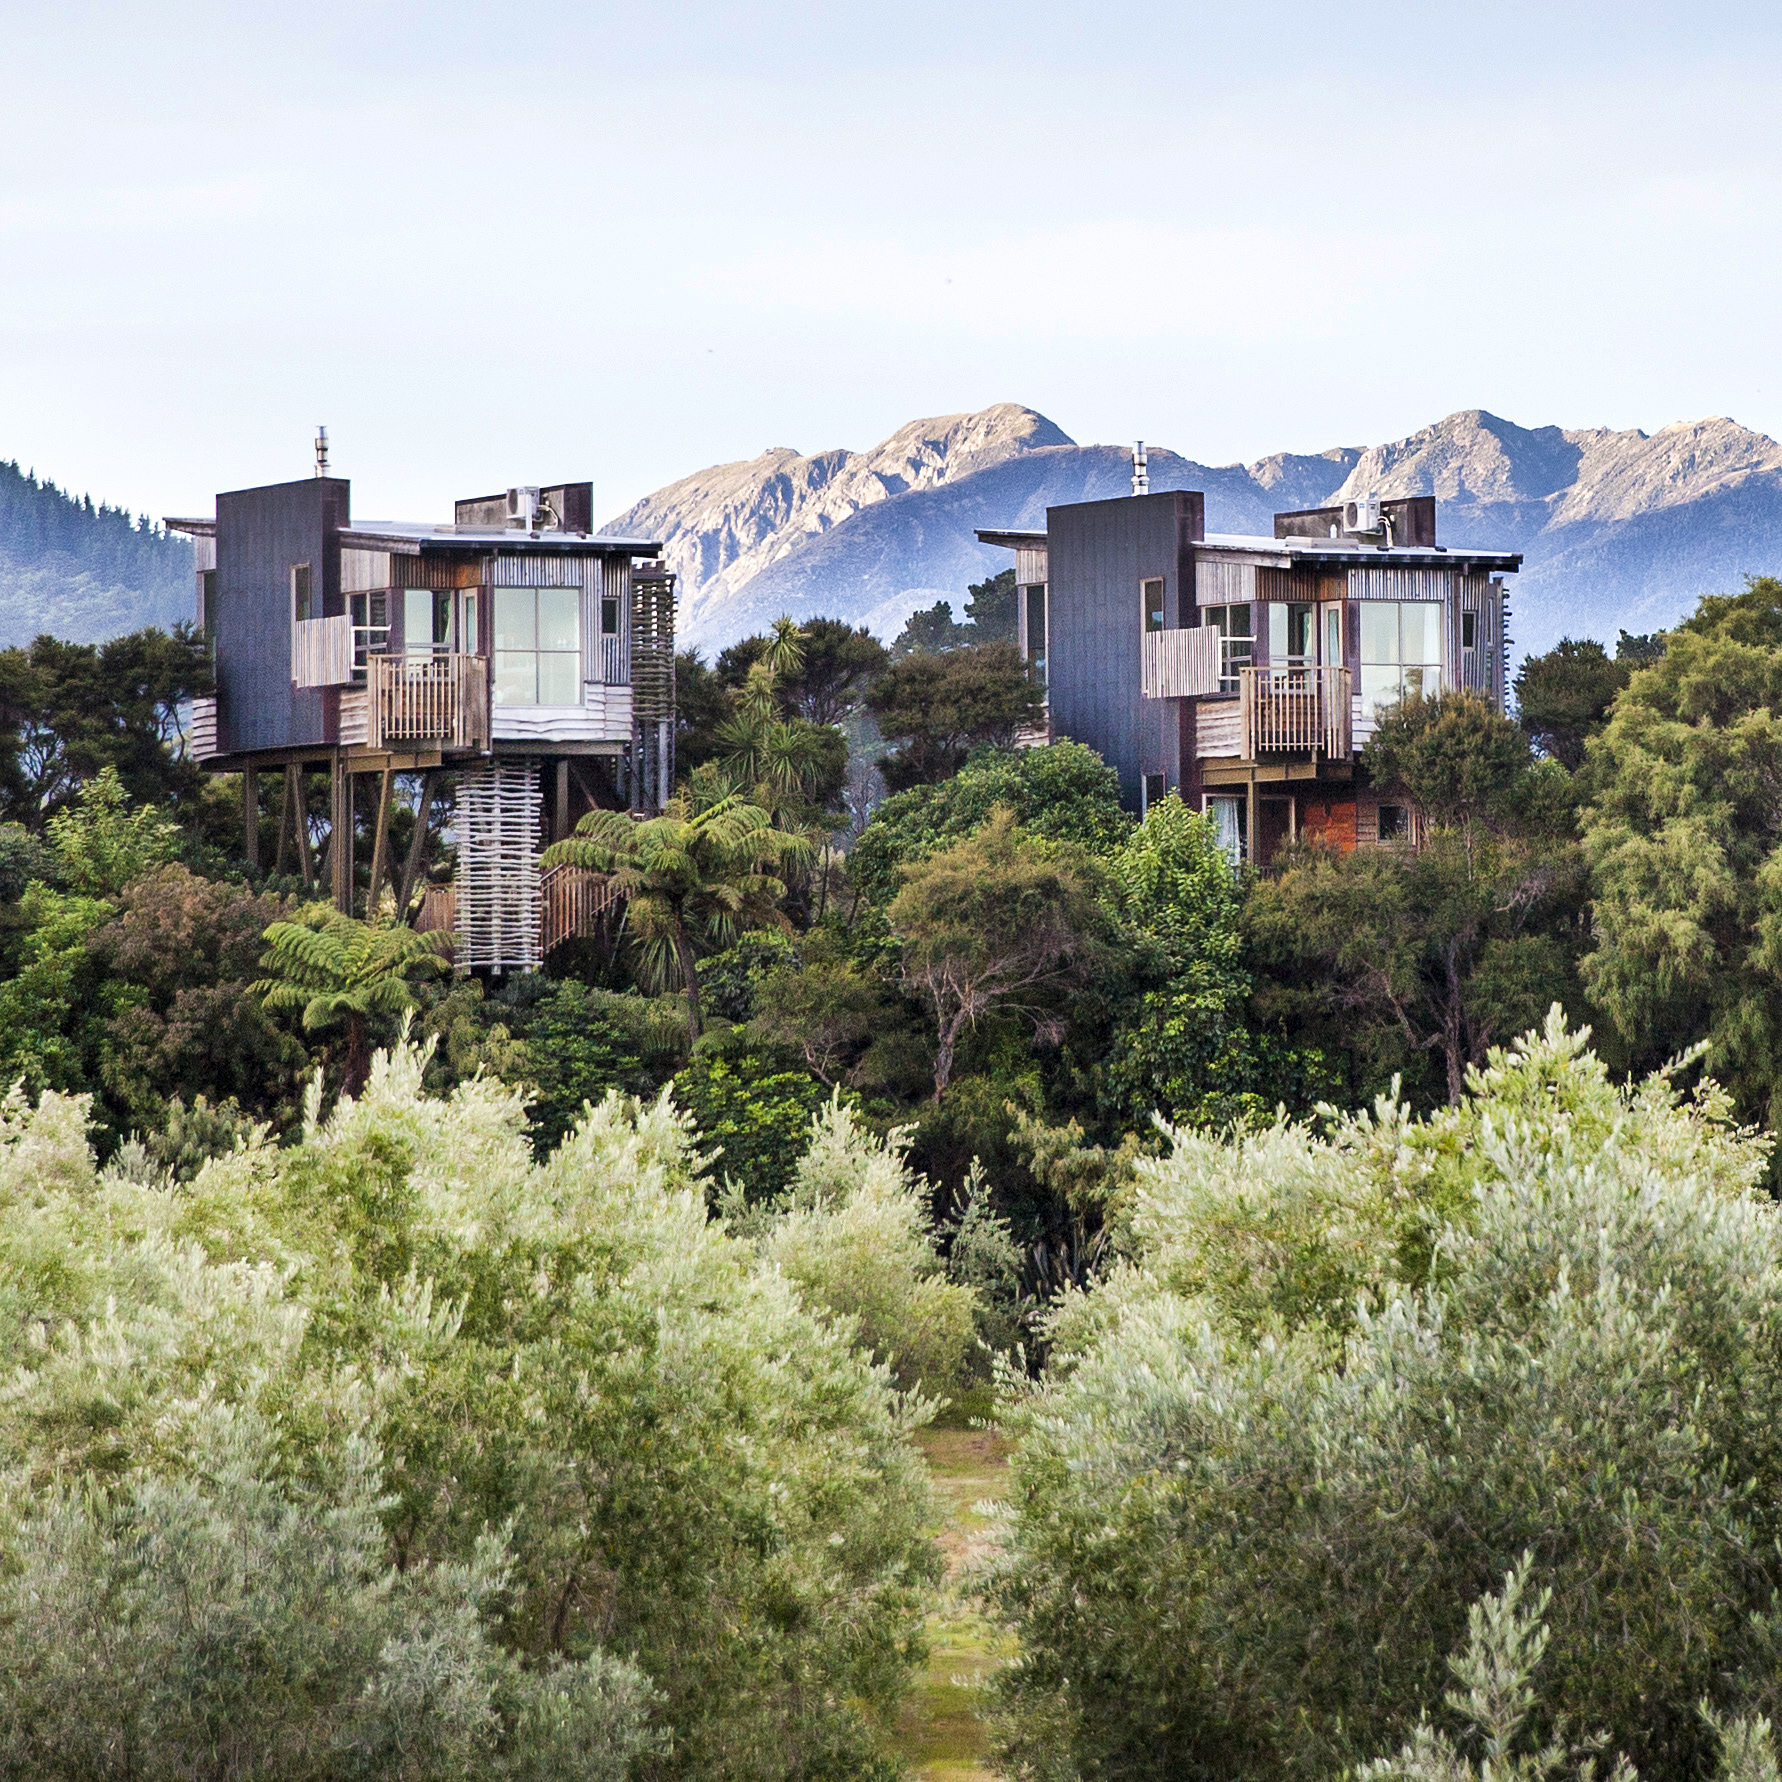 TREE HOUSES - Luxury, out on a limb...